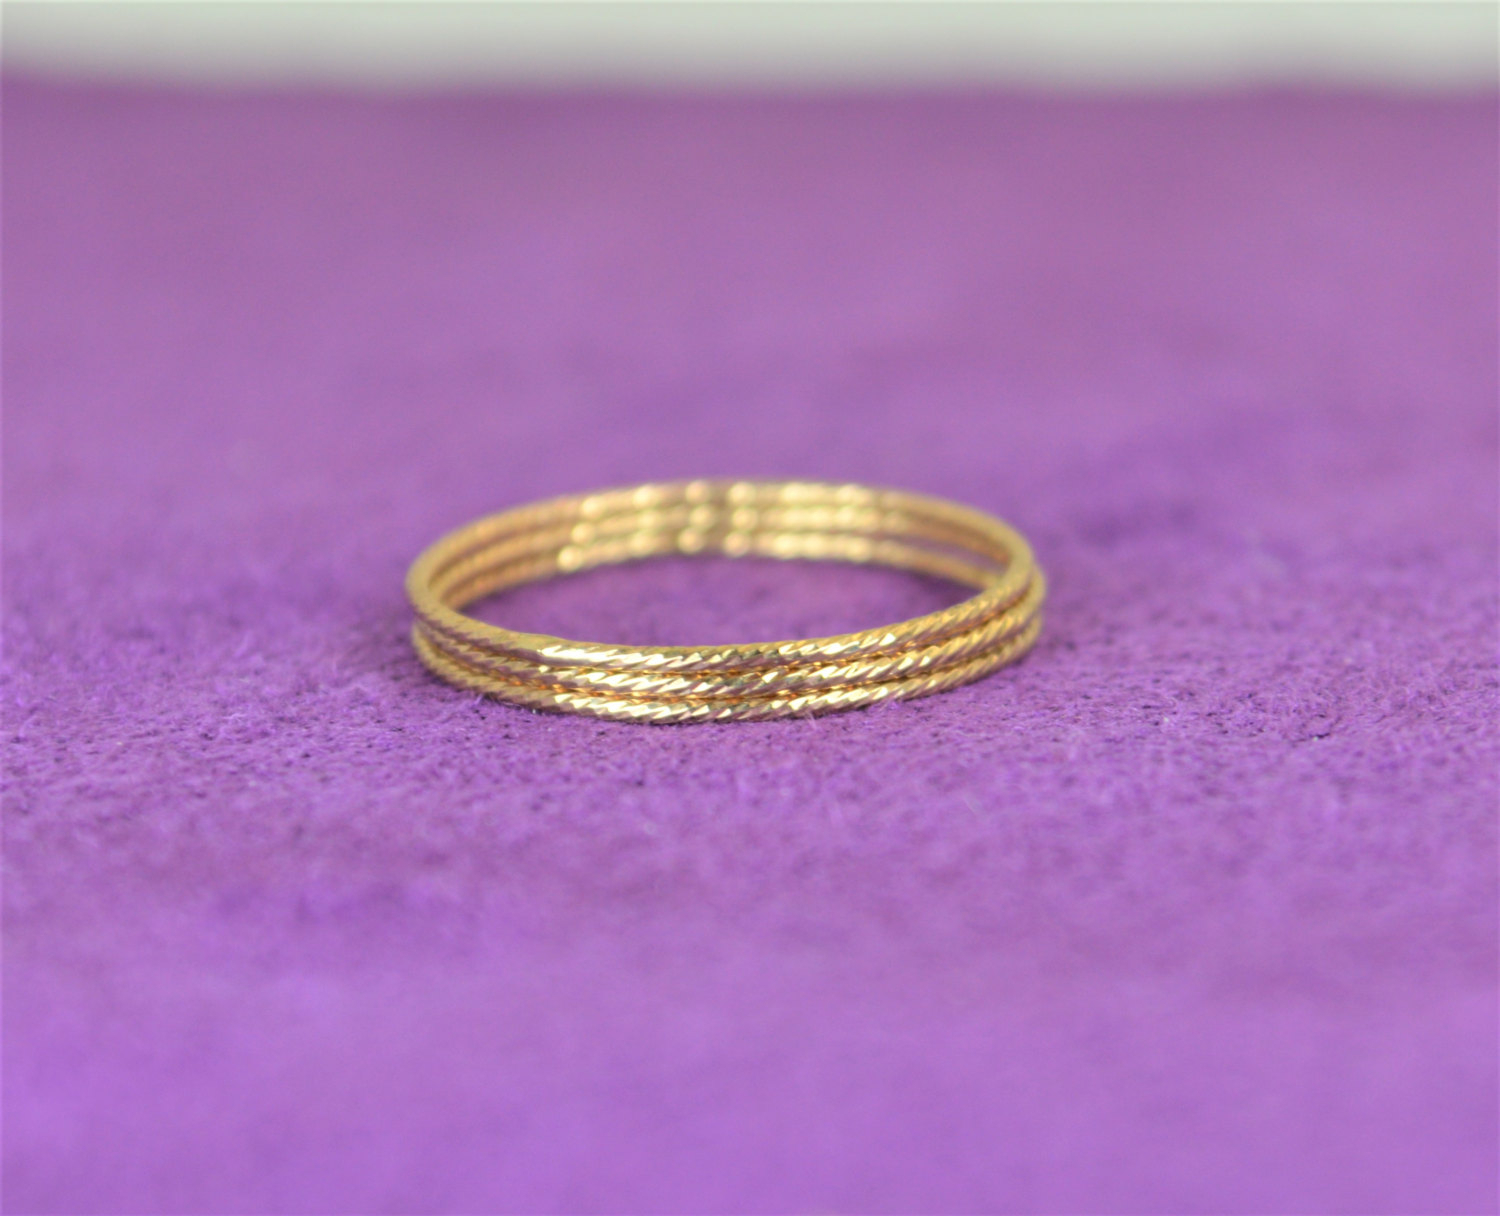 Thin Gold Filled Sparkle Ring, Gold Ring, Stacking Ring(s), Dainty In Most Popular Elegant Sparkle Rings (View 10 of 25)